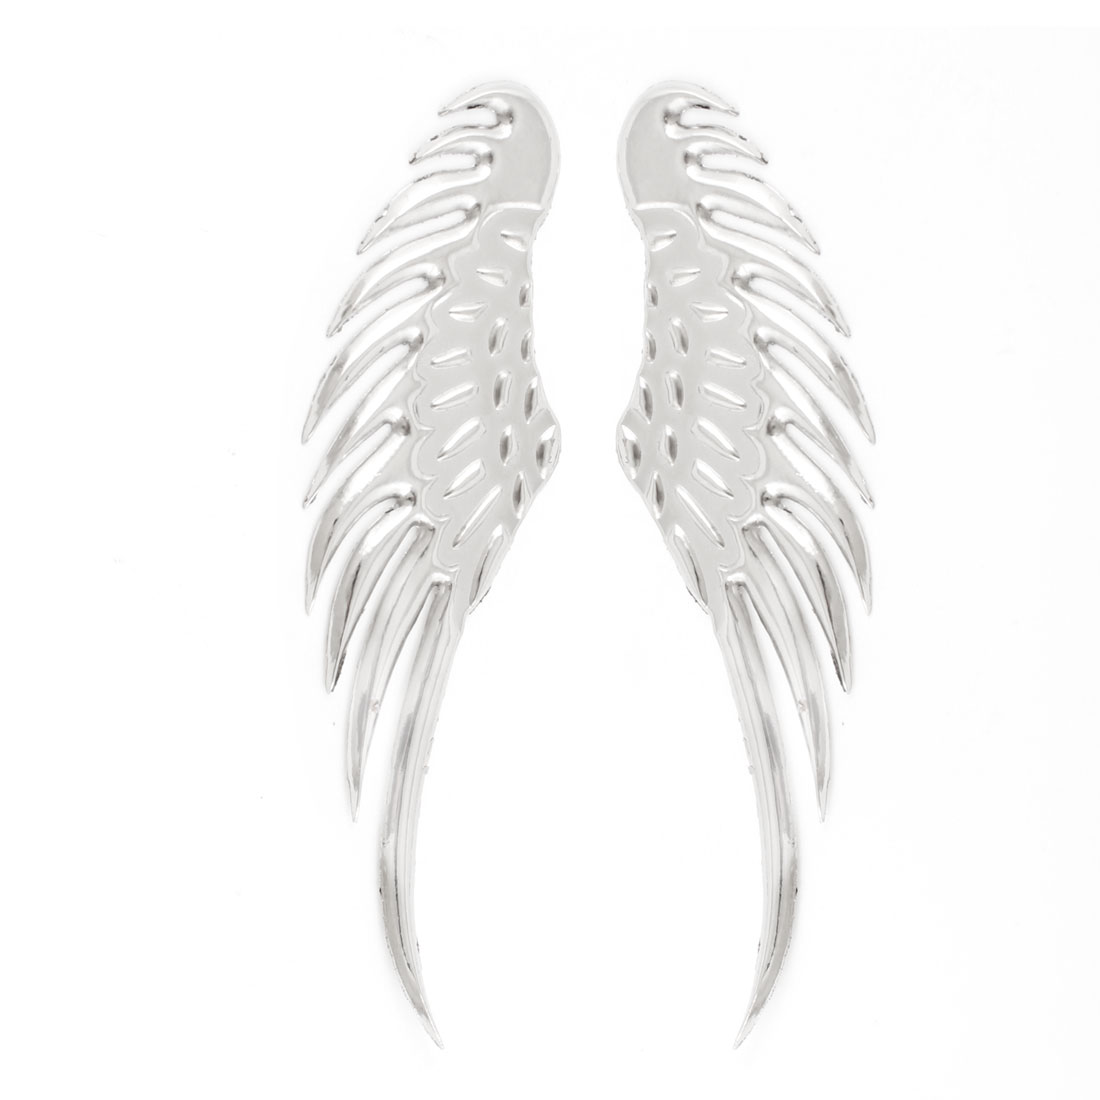 Pair Auto Car Decor Silver Tone Metal Wing Design Adhesive Sticker